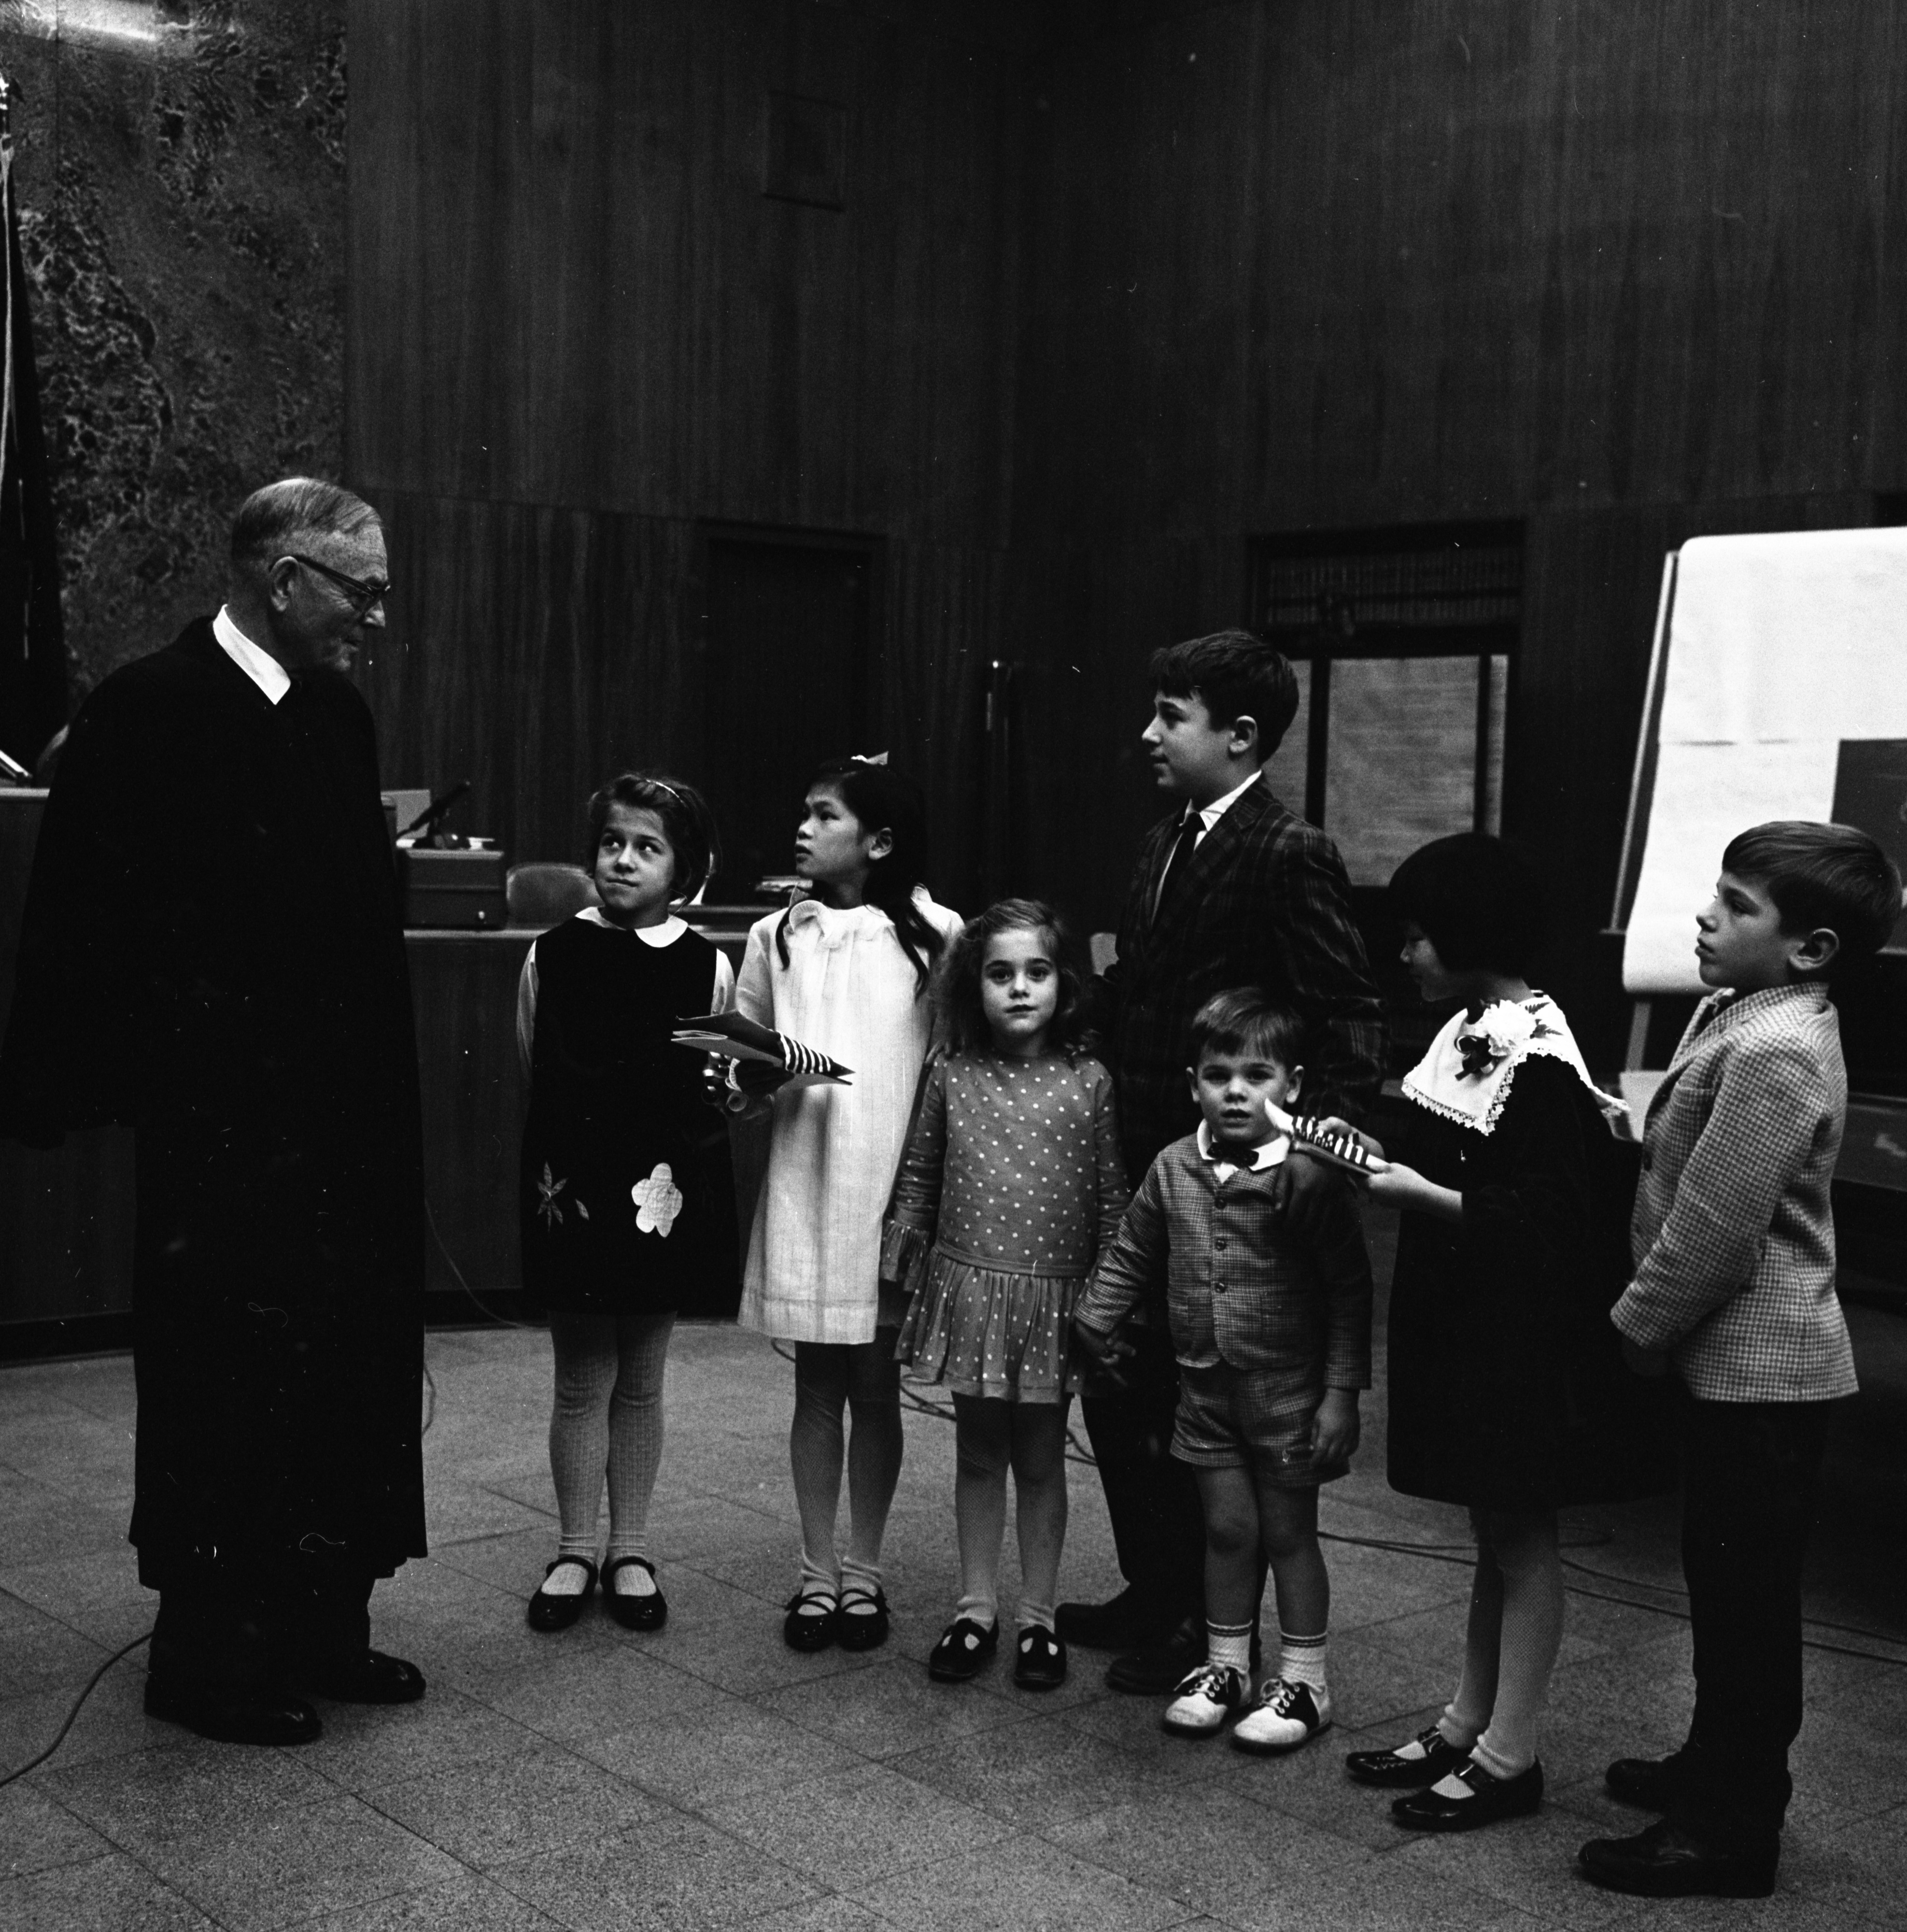 Judge James R. Breakey Jr. Congratulates New U. S. Citizens Cecilia Oi-Chan Hooper and Jeanne D'Arc Hooper, November 1967 image